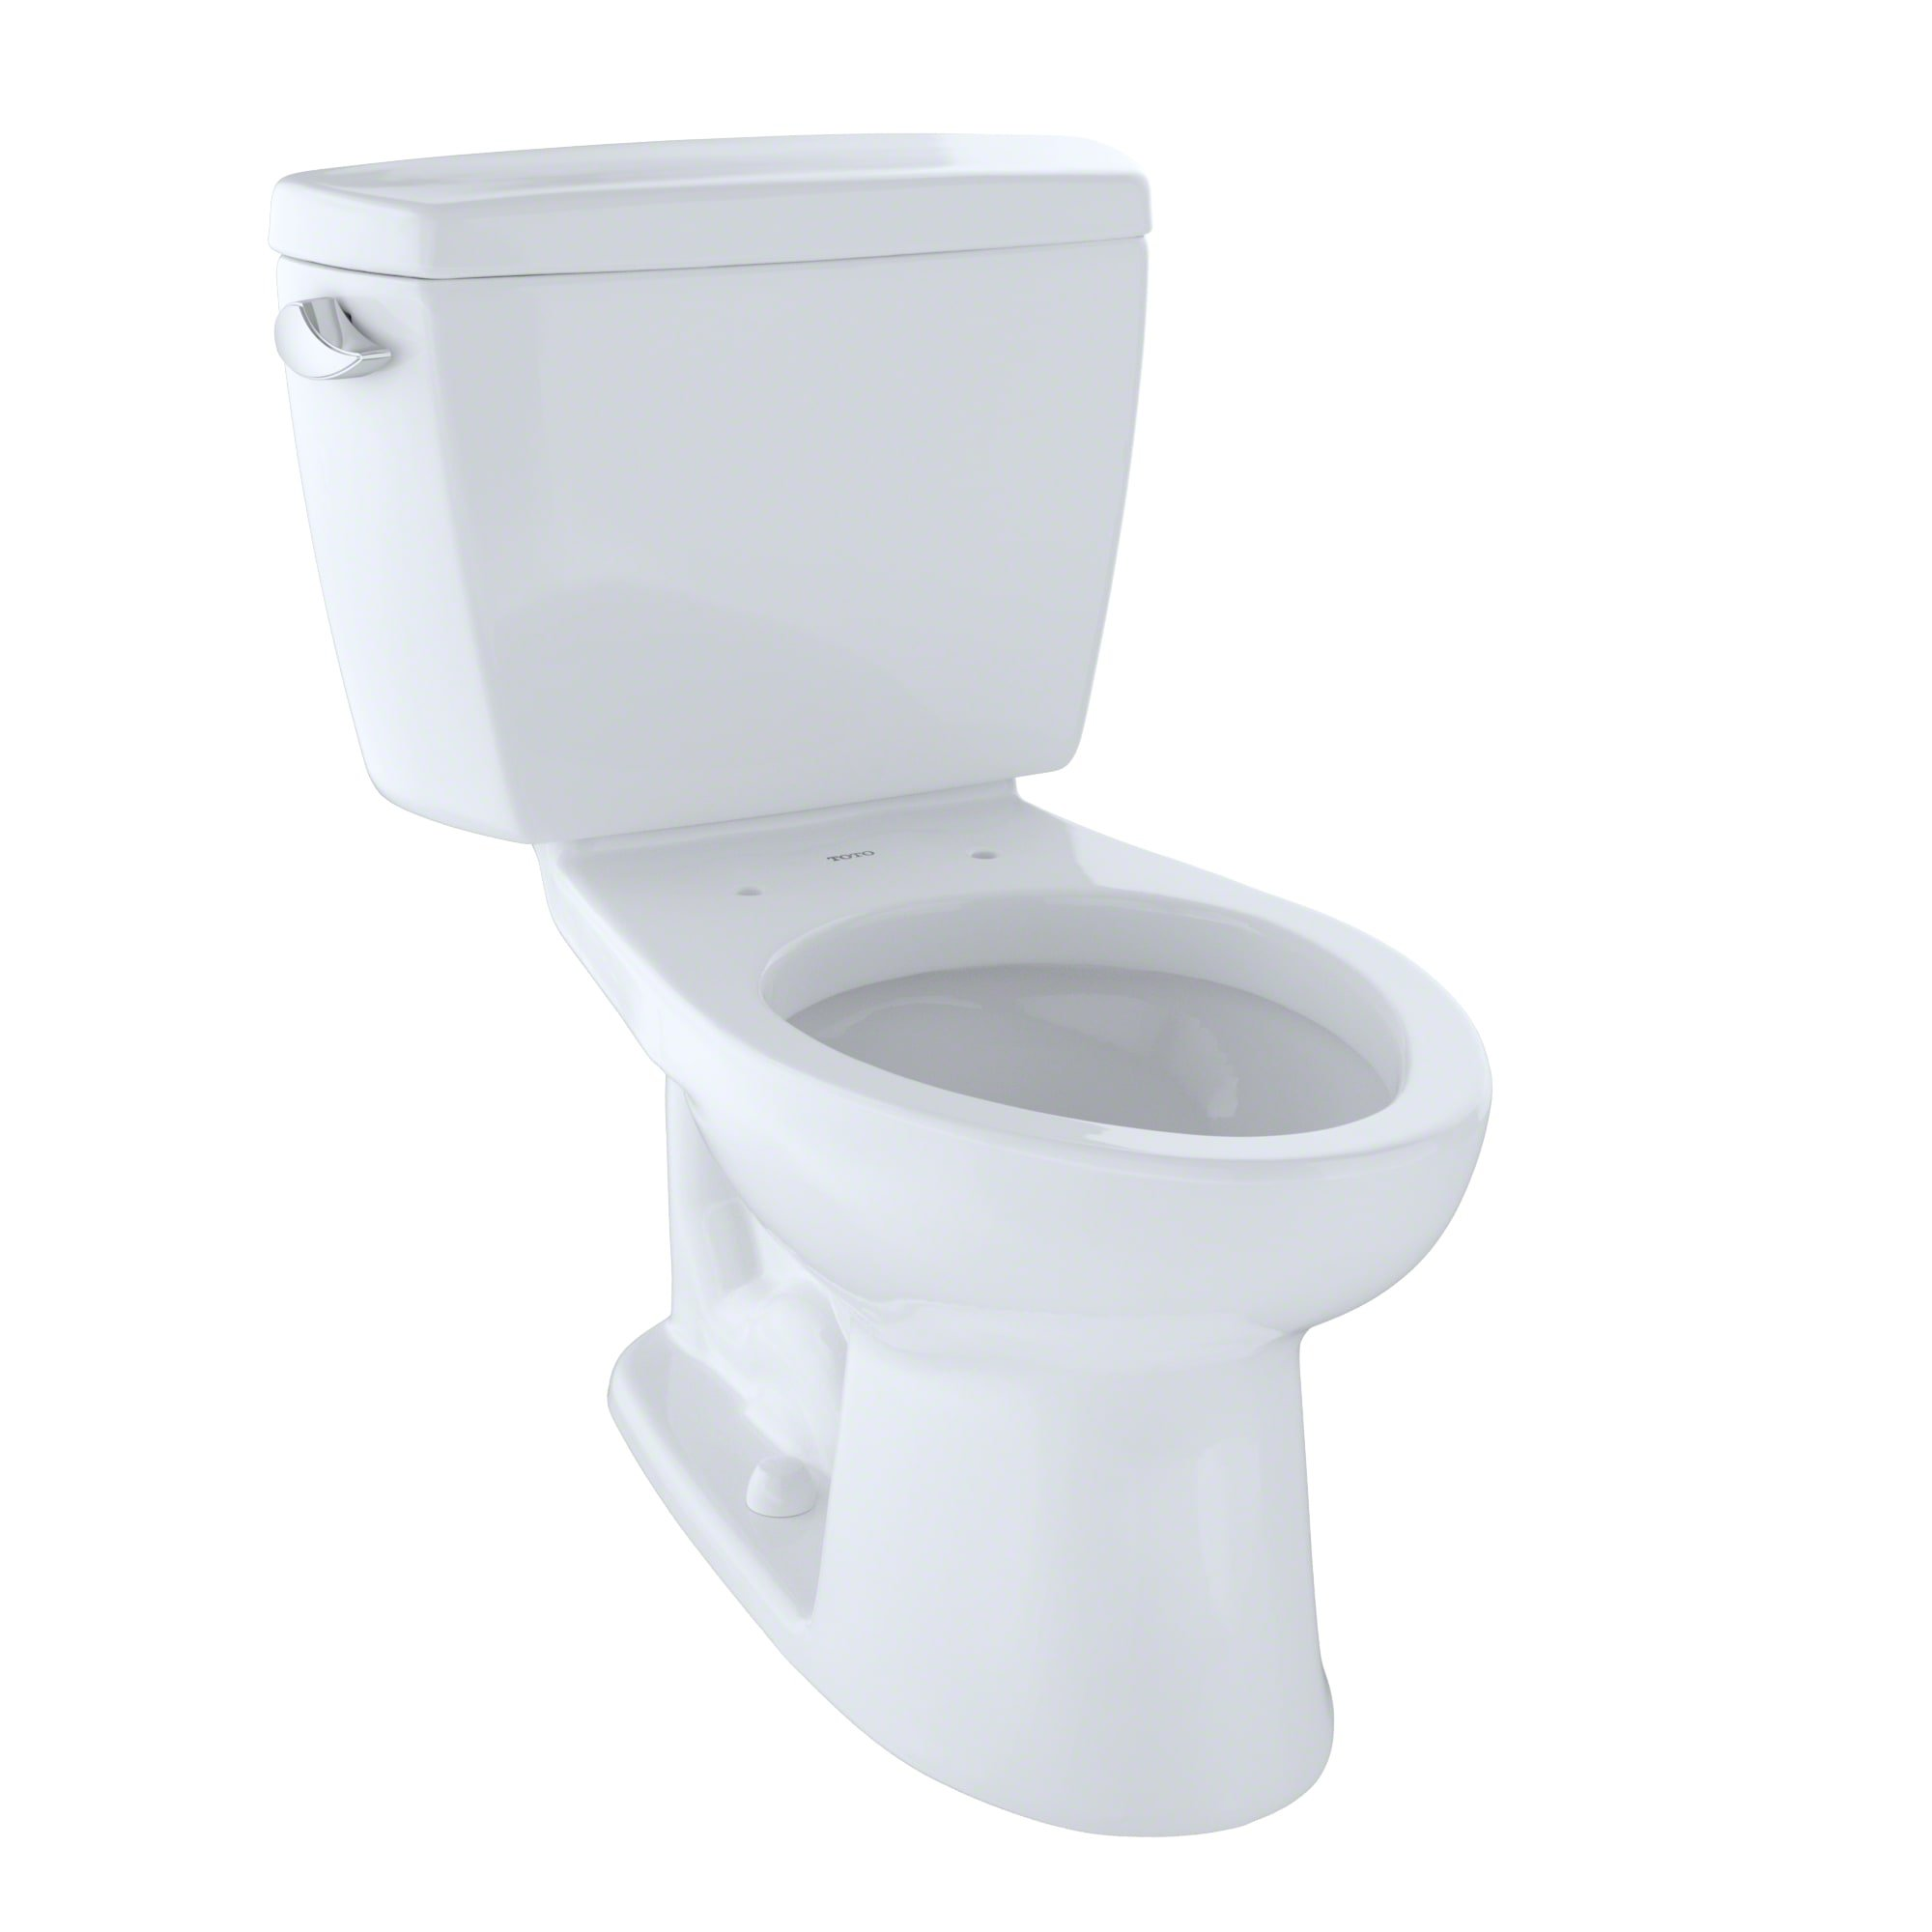 TOTO CST744SL#01 Drake 2-Piece Ada Toilet with Elongated Bowl, Cotton White by TOTO